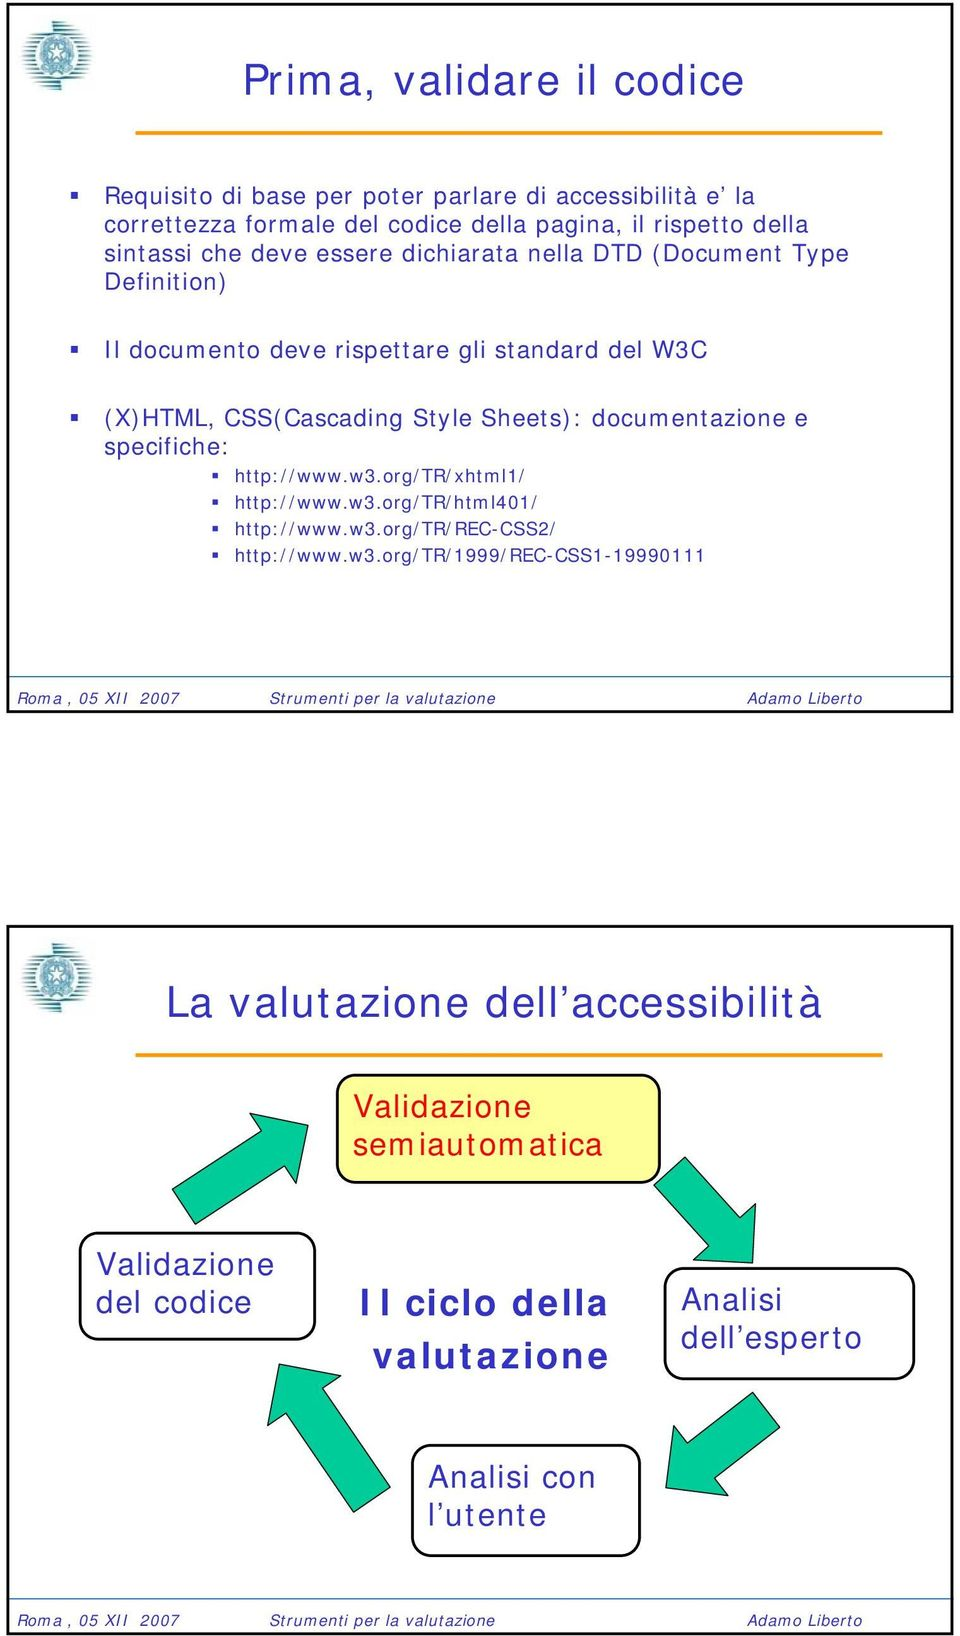 documentazione e specifiche: http://www.w3.